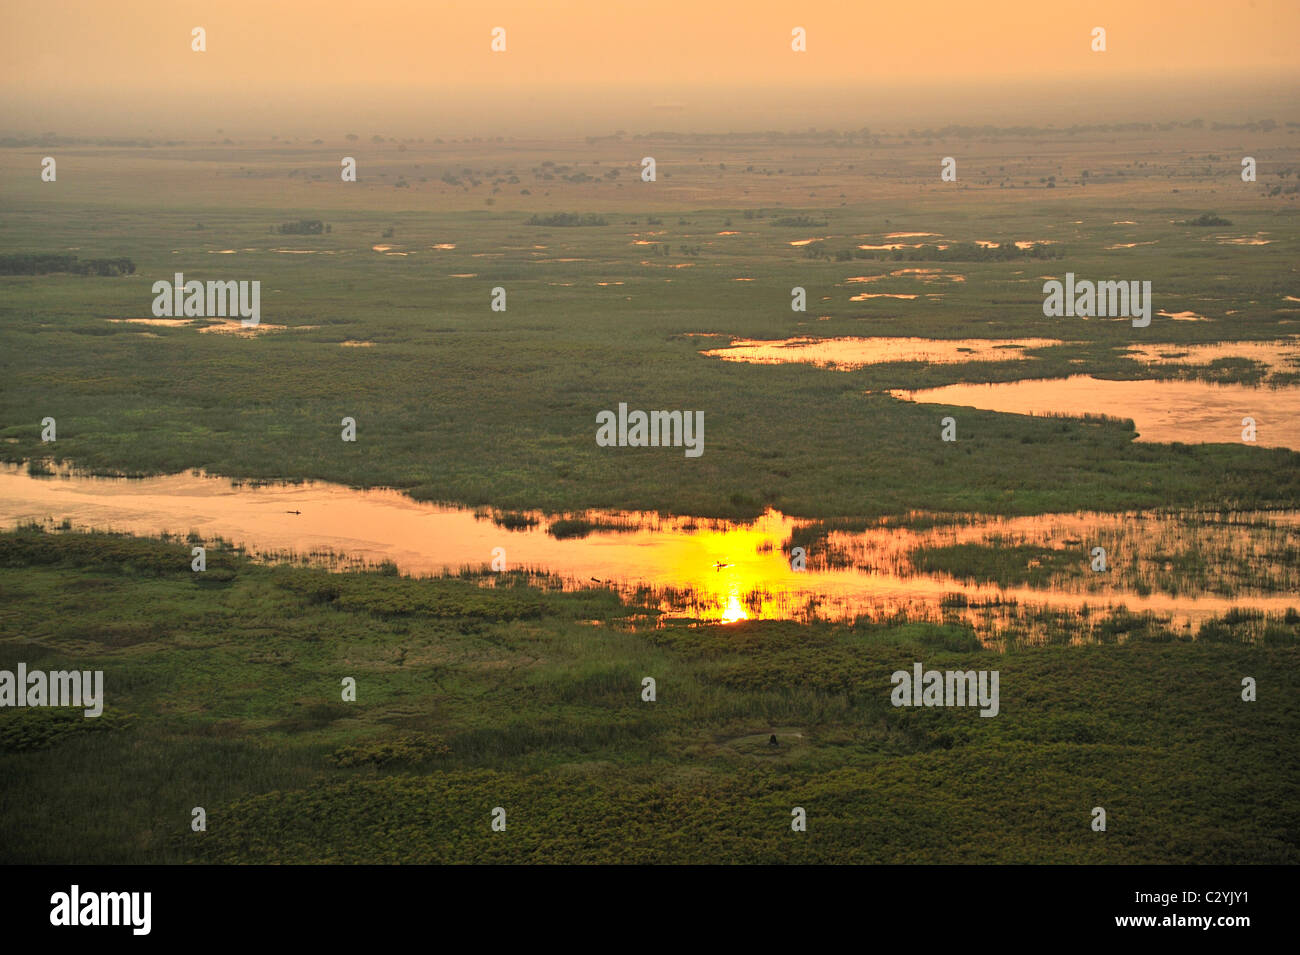 Fisherman in channel at sunset, Sudd Swamp, South Sudan - Stock Image